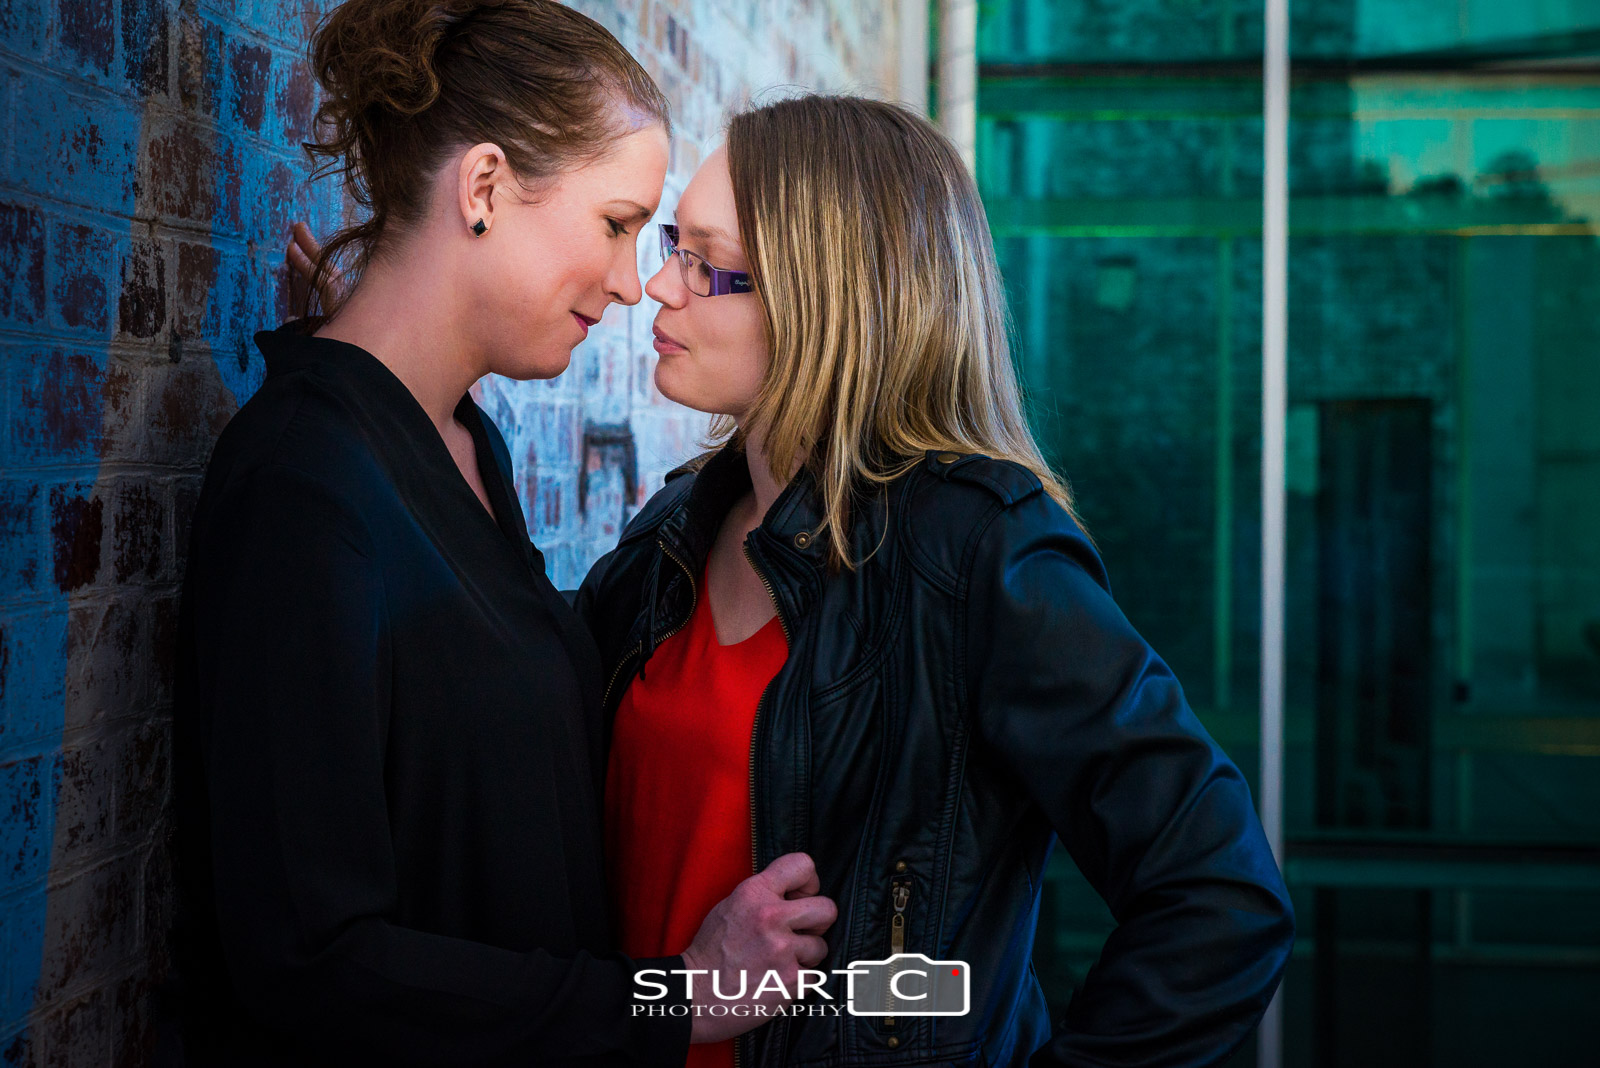 Female couple in black jackets against brick wall with green glass behind during evening